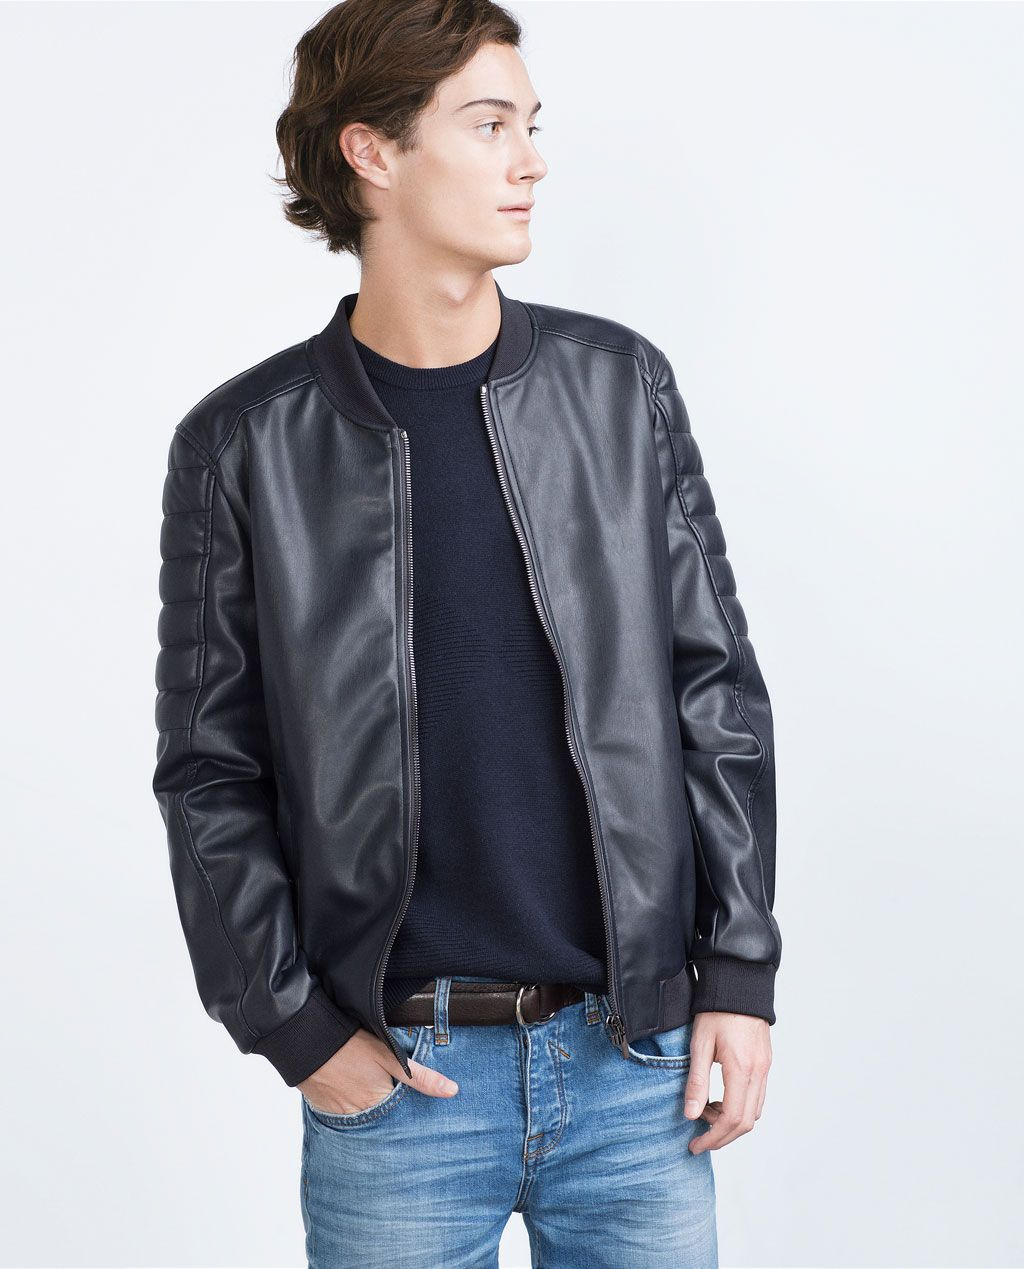 ZARA MAN FAUX LEATHER JACKET Jackets, Faux leather